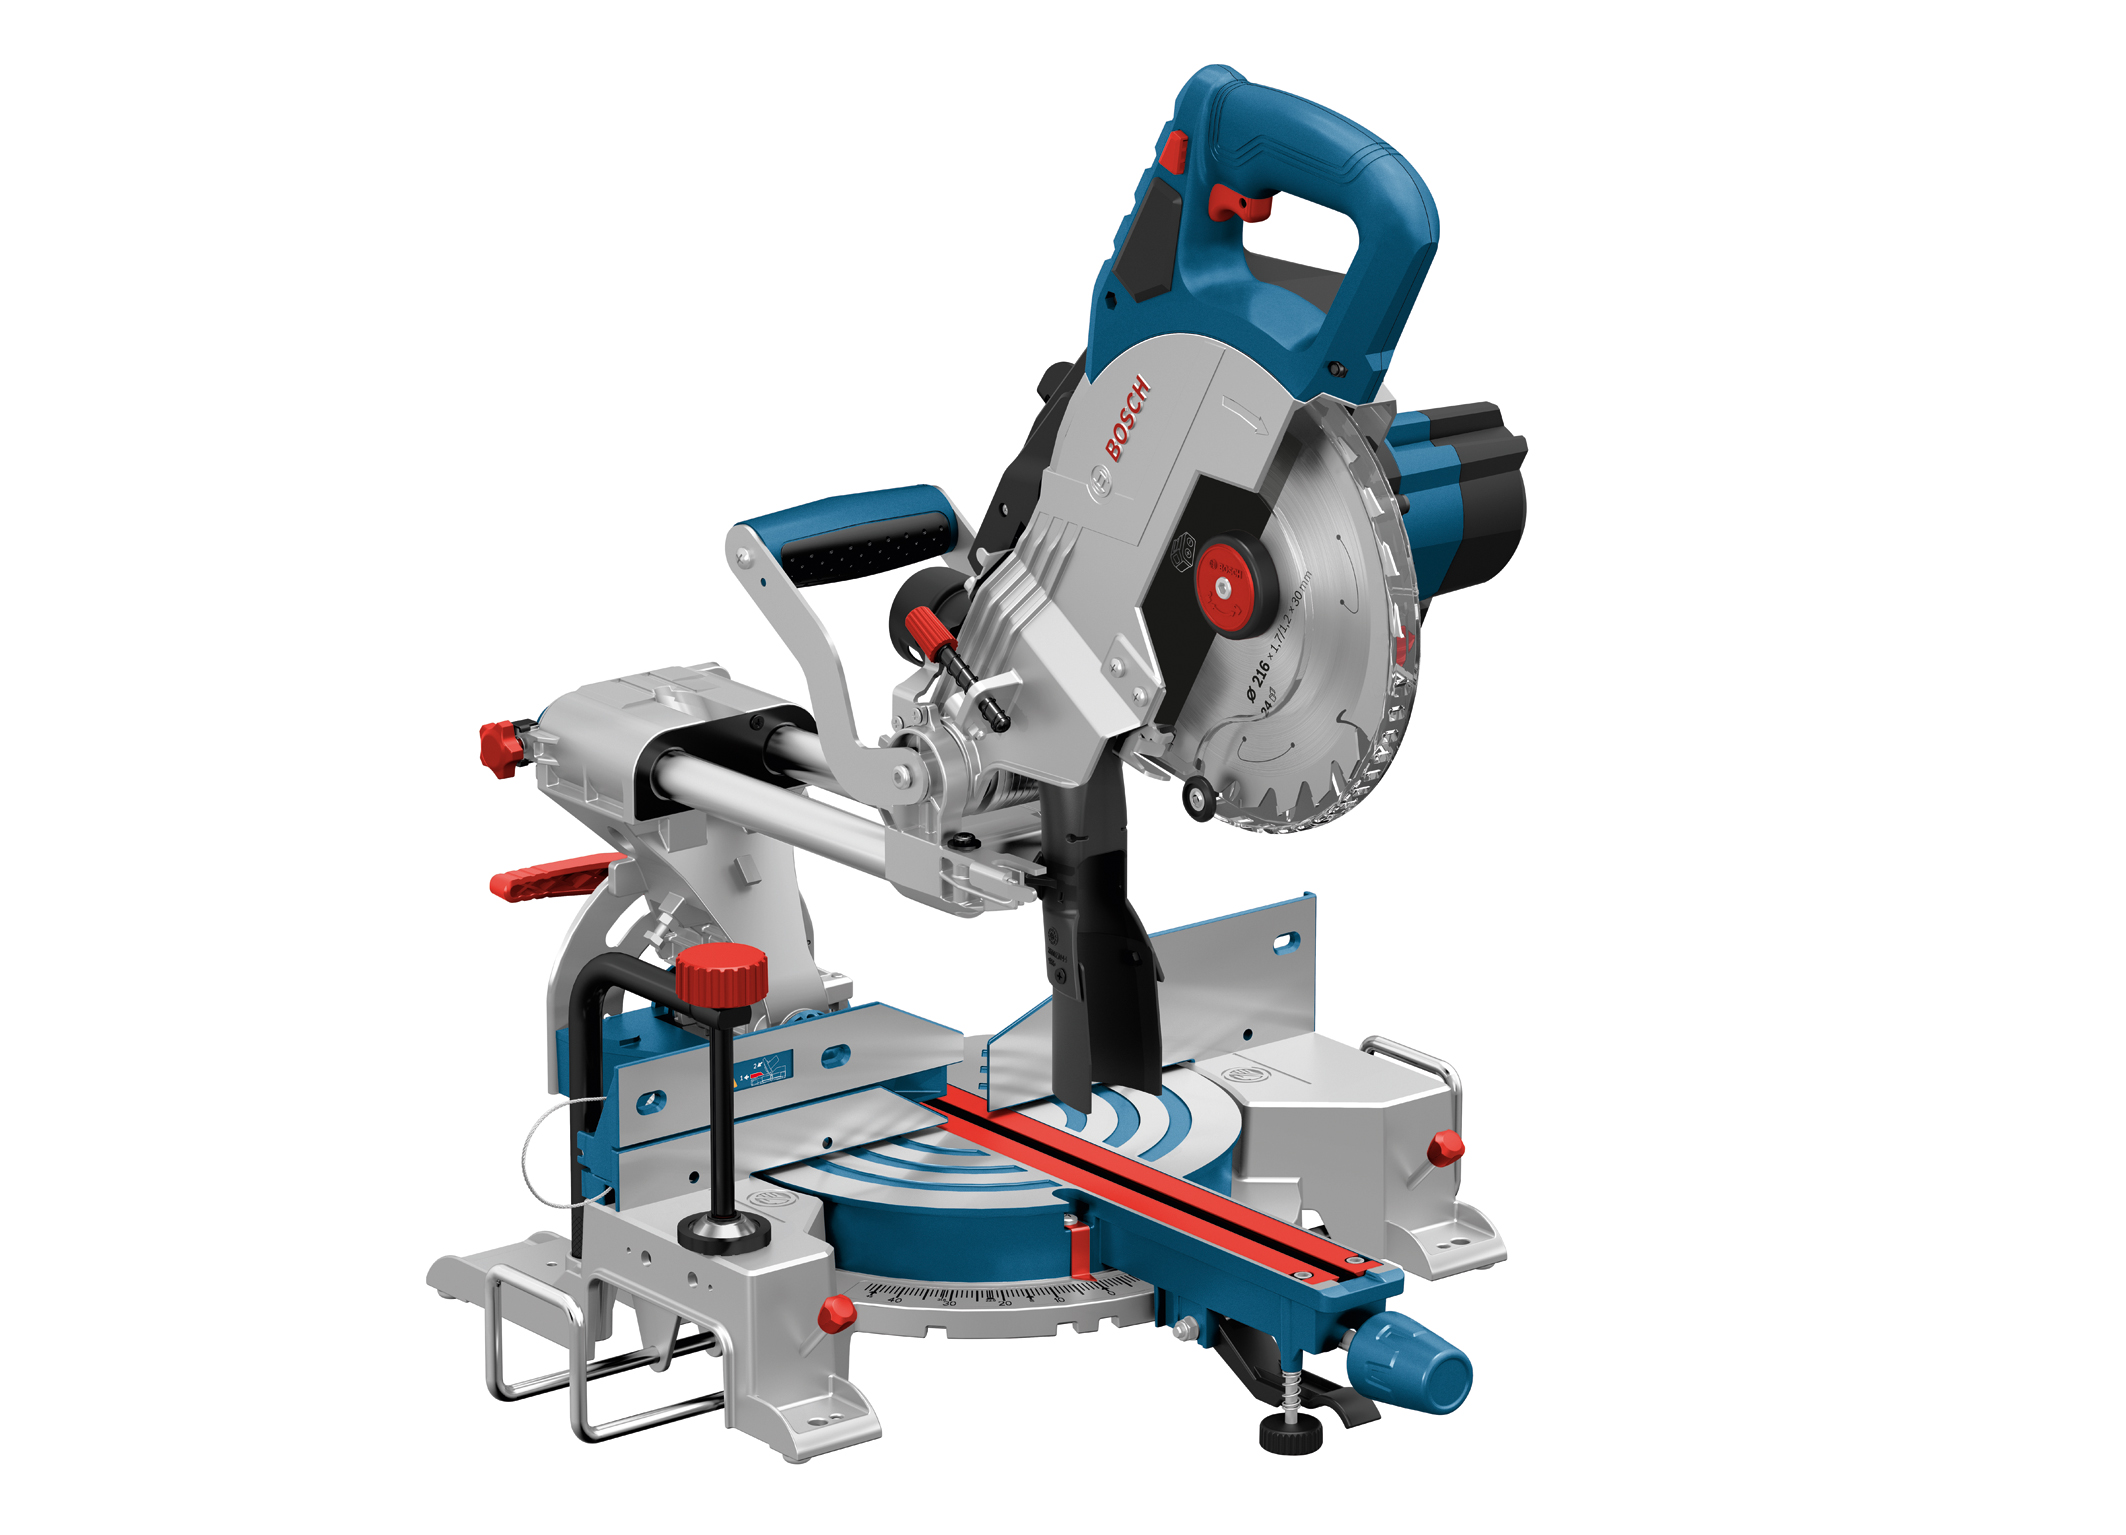 Powerful tool for mobile use:  Cordless GCM 18V-216 Professional sliding miter saw from Bosch for professionals